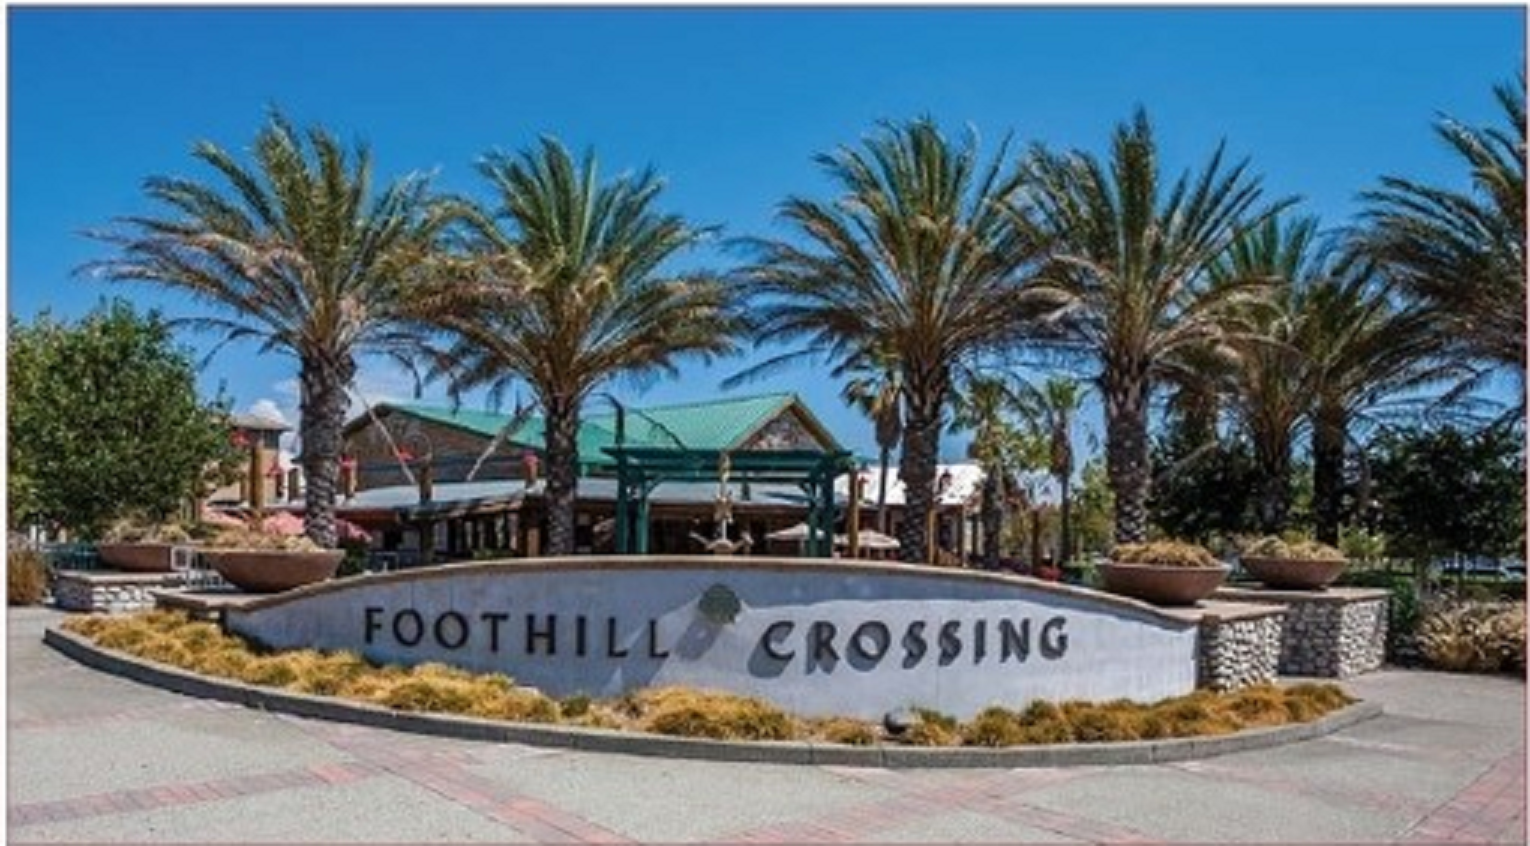 Foothill crossings